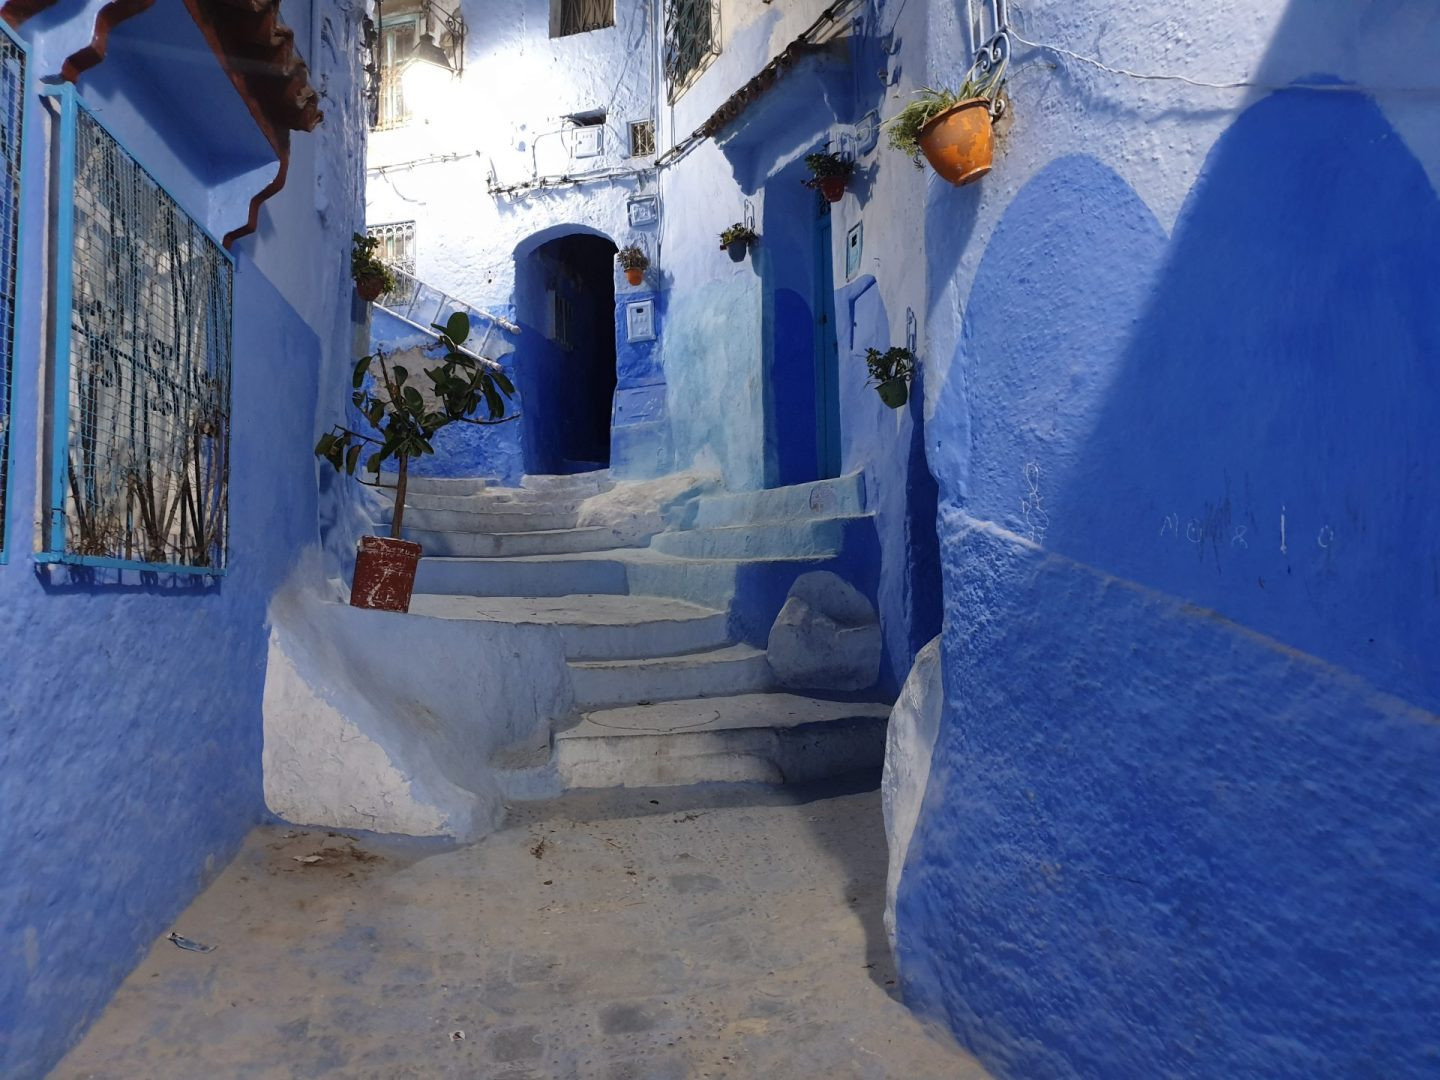 VIDEO: CHEFCHAOUEN (MARRUECOS) BLANCO Y AZUL